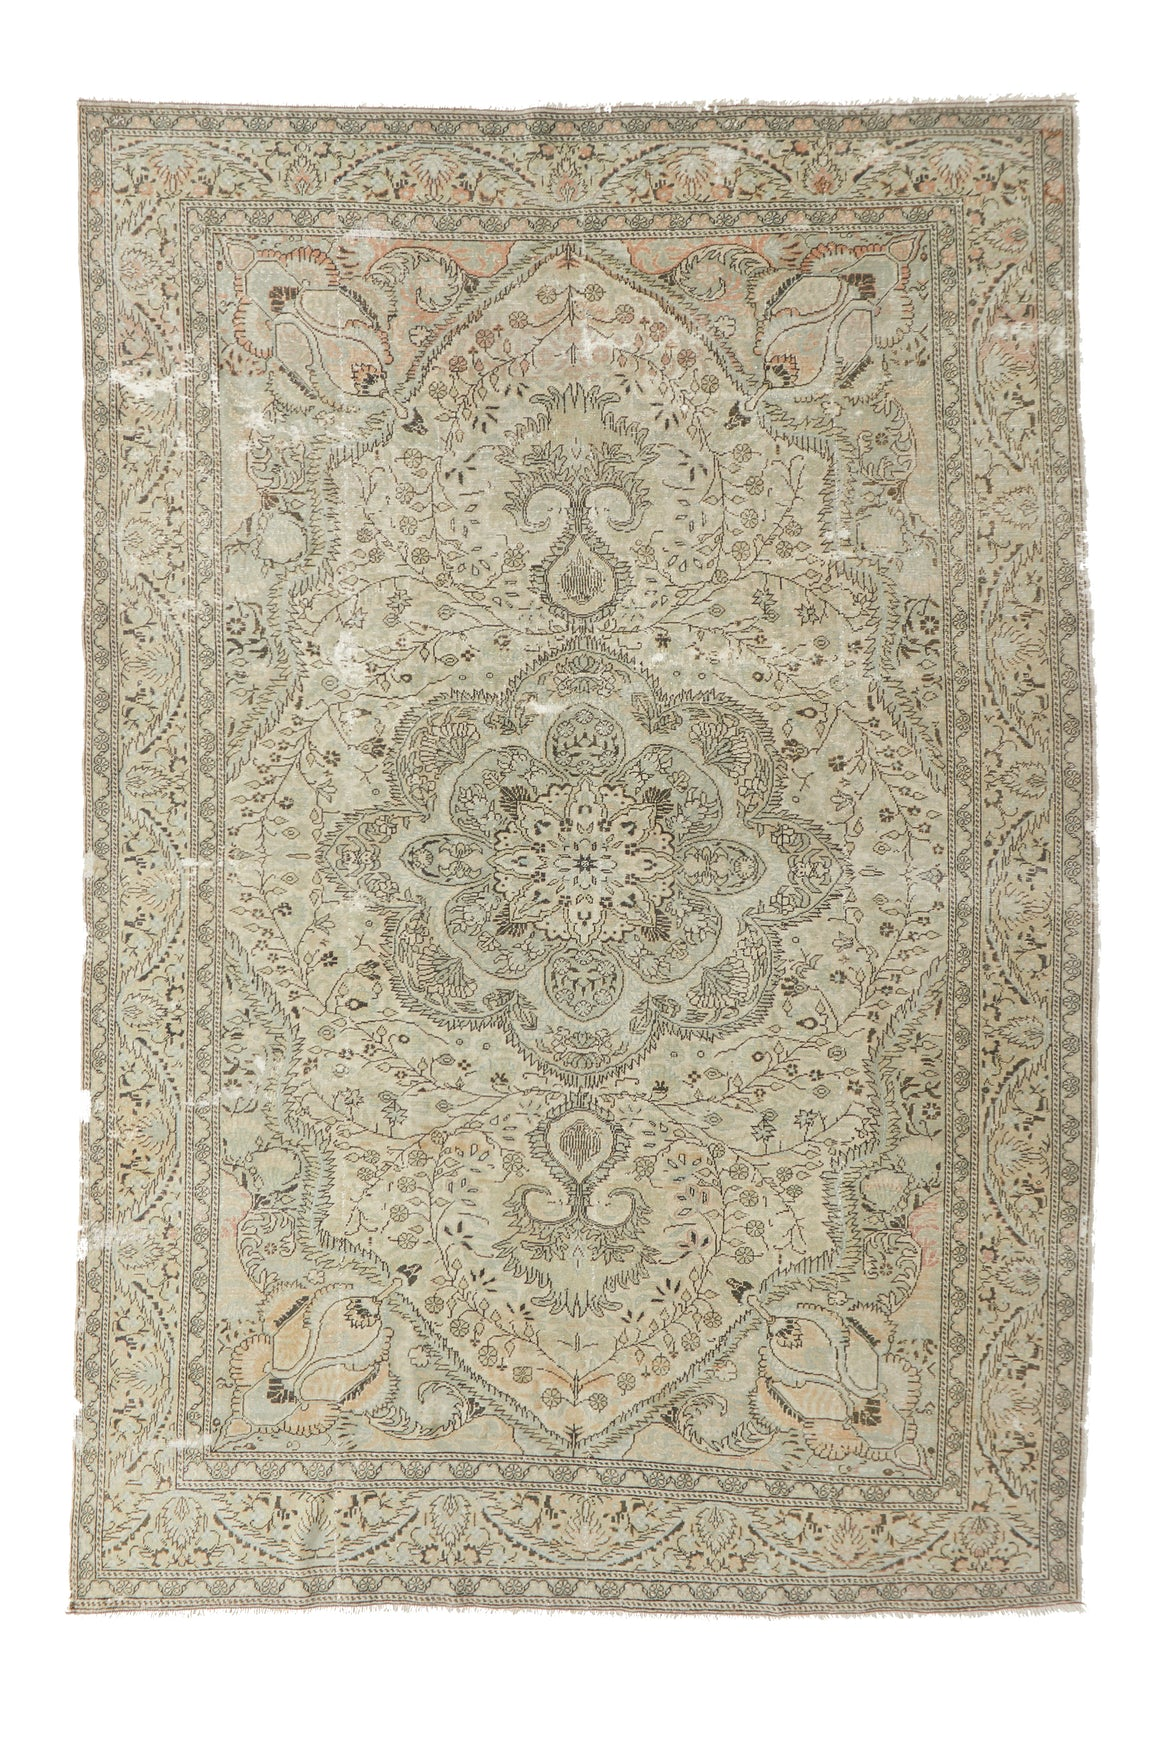 "'Artemisia' Vintage Persian Rug - 6'6"" x 9'8"" - Canary Lane - Curated Textiles"